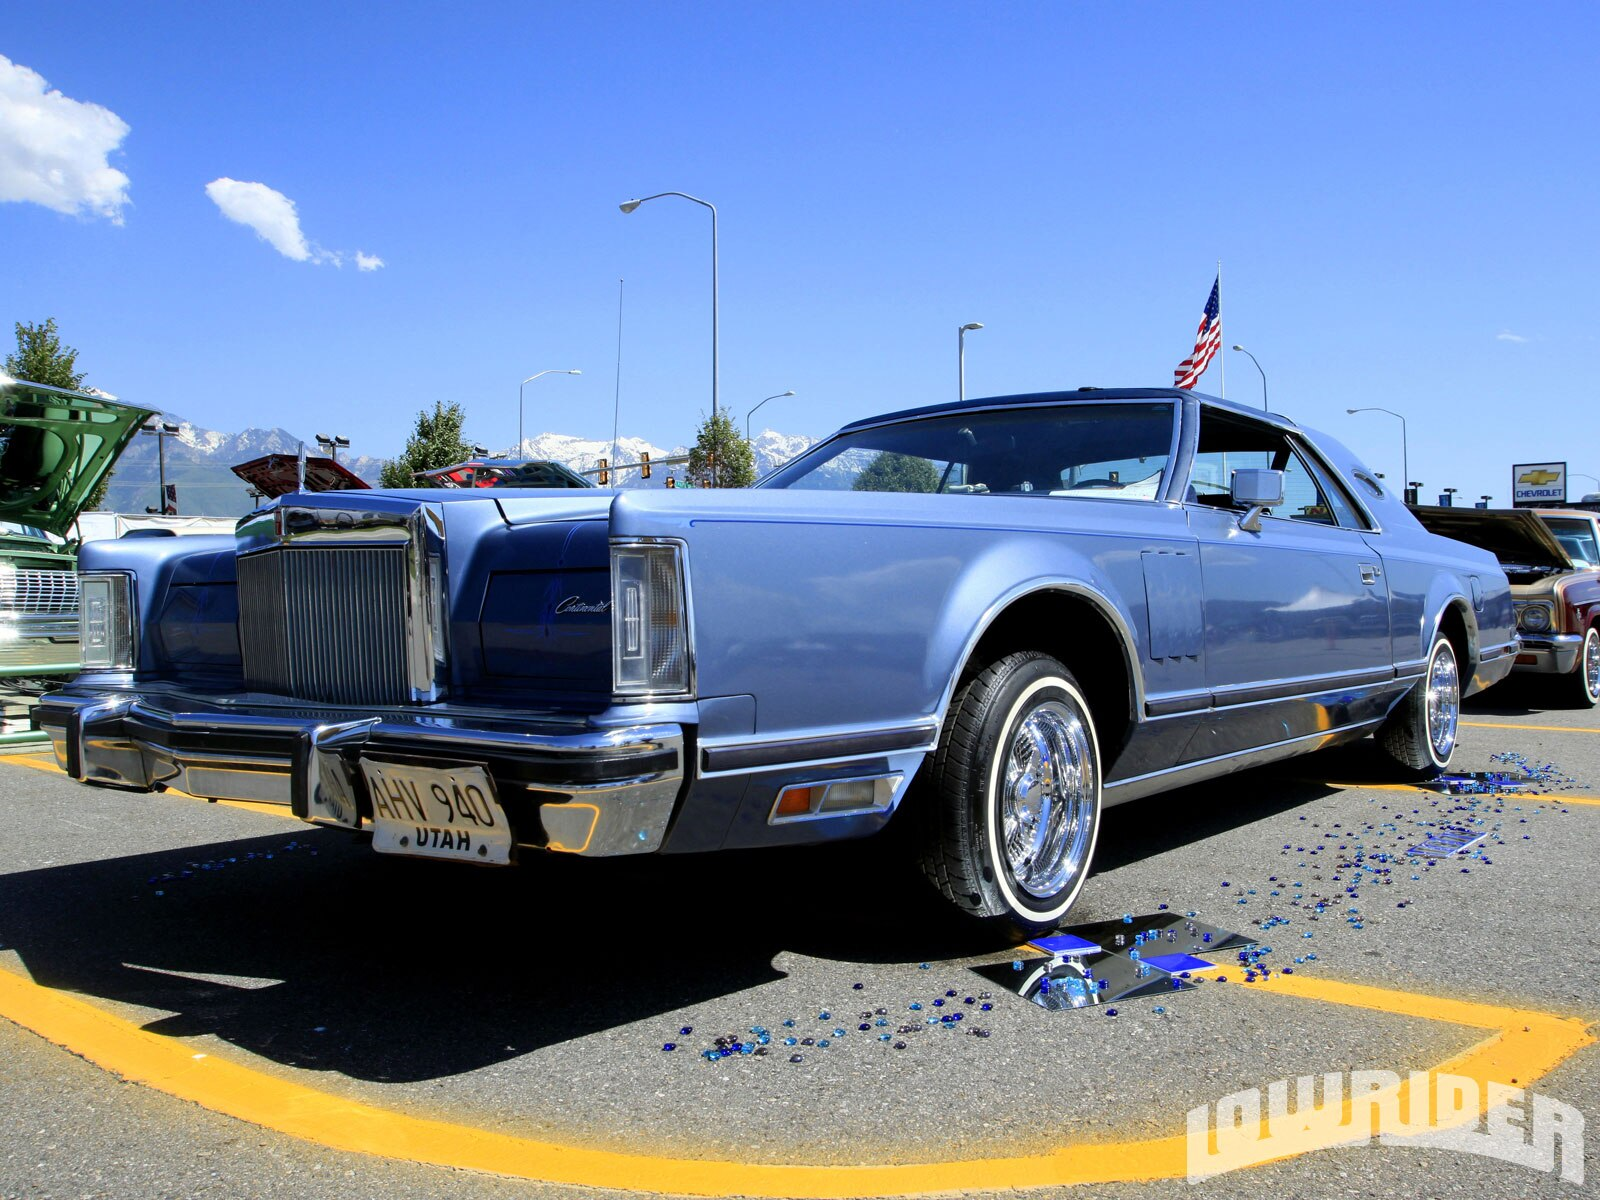 1111-lrmp-27-o-victors-tires-5th-annual-car-show-lincoln-continental.JPG2